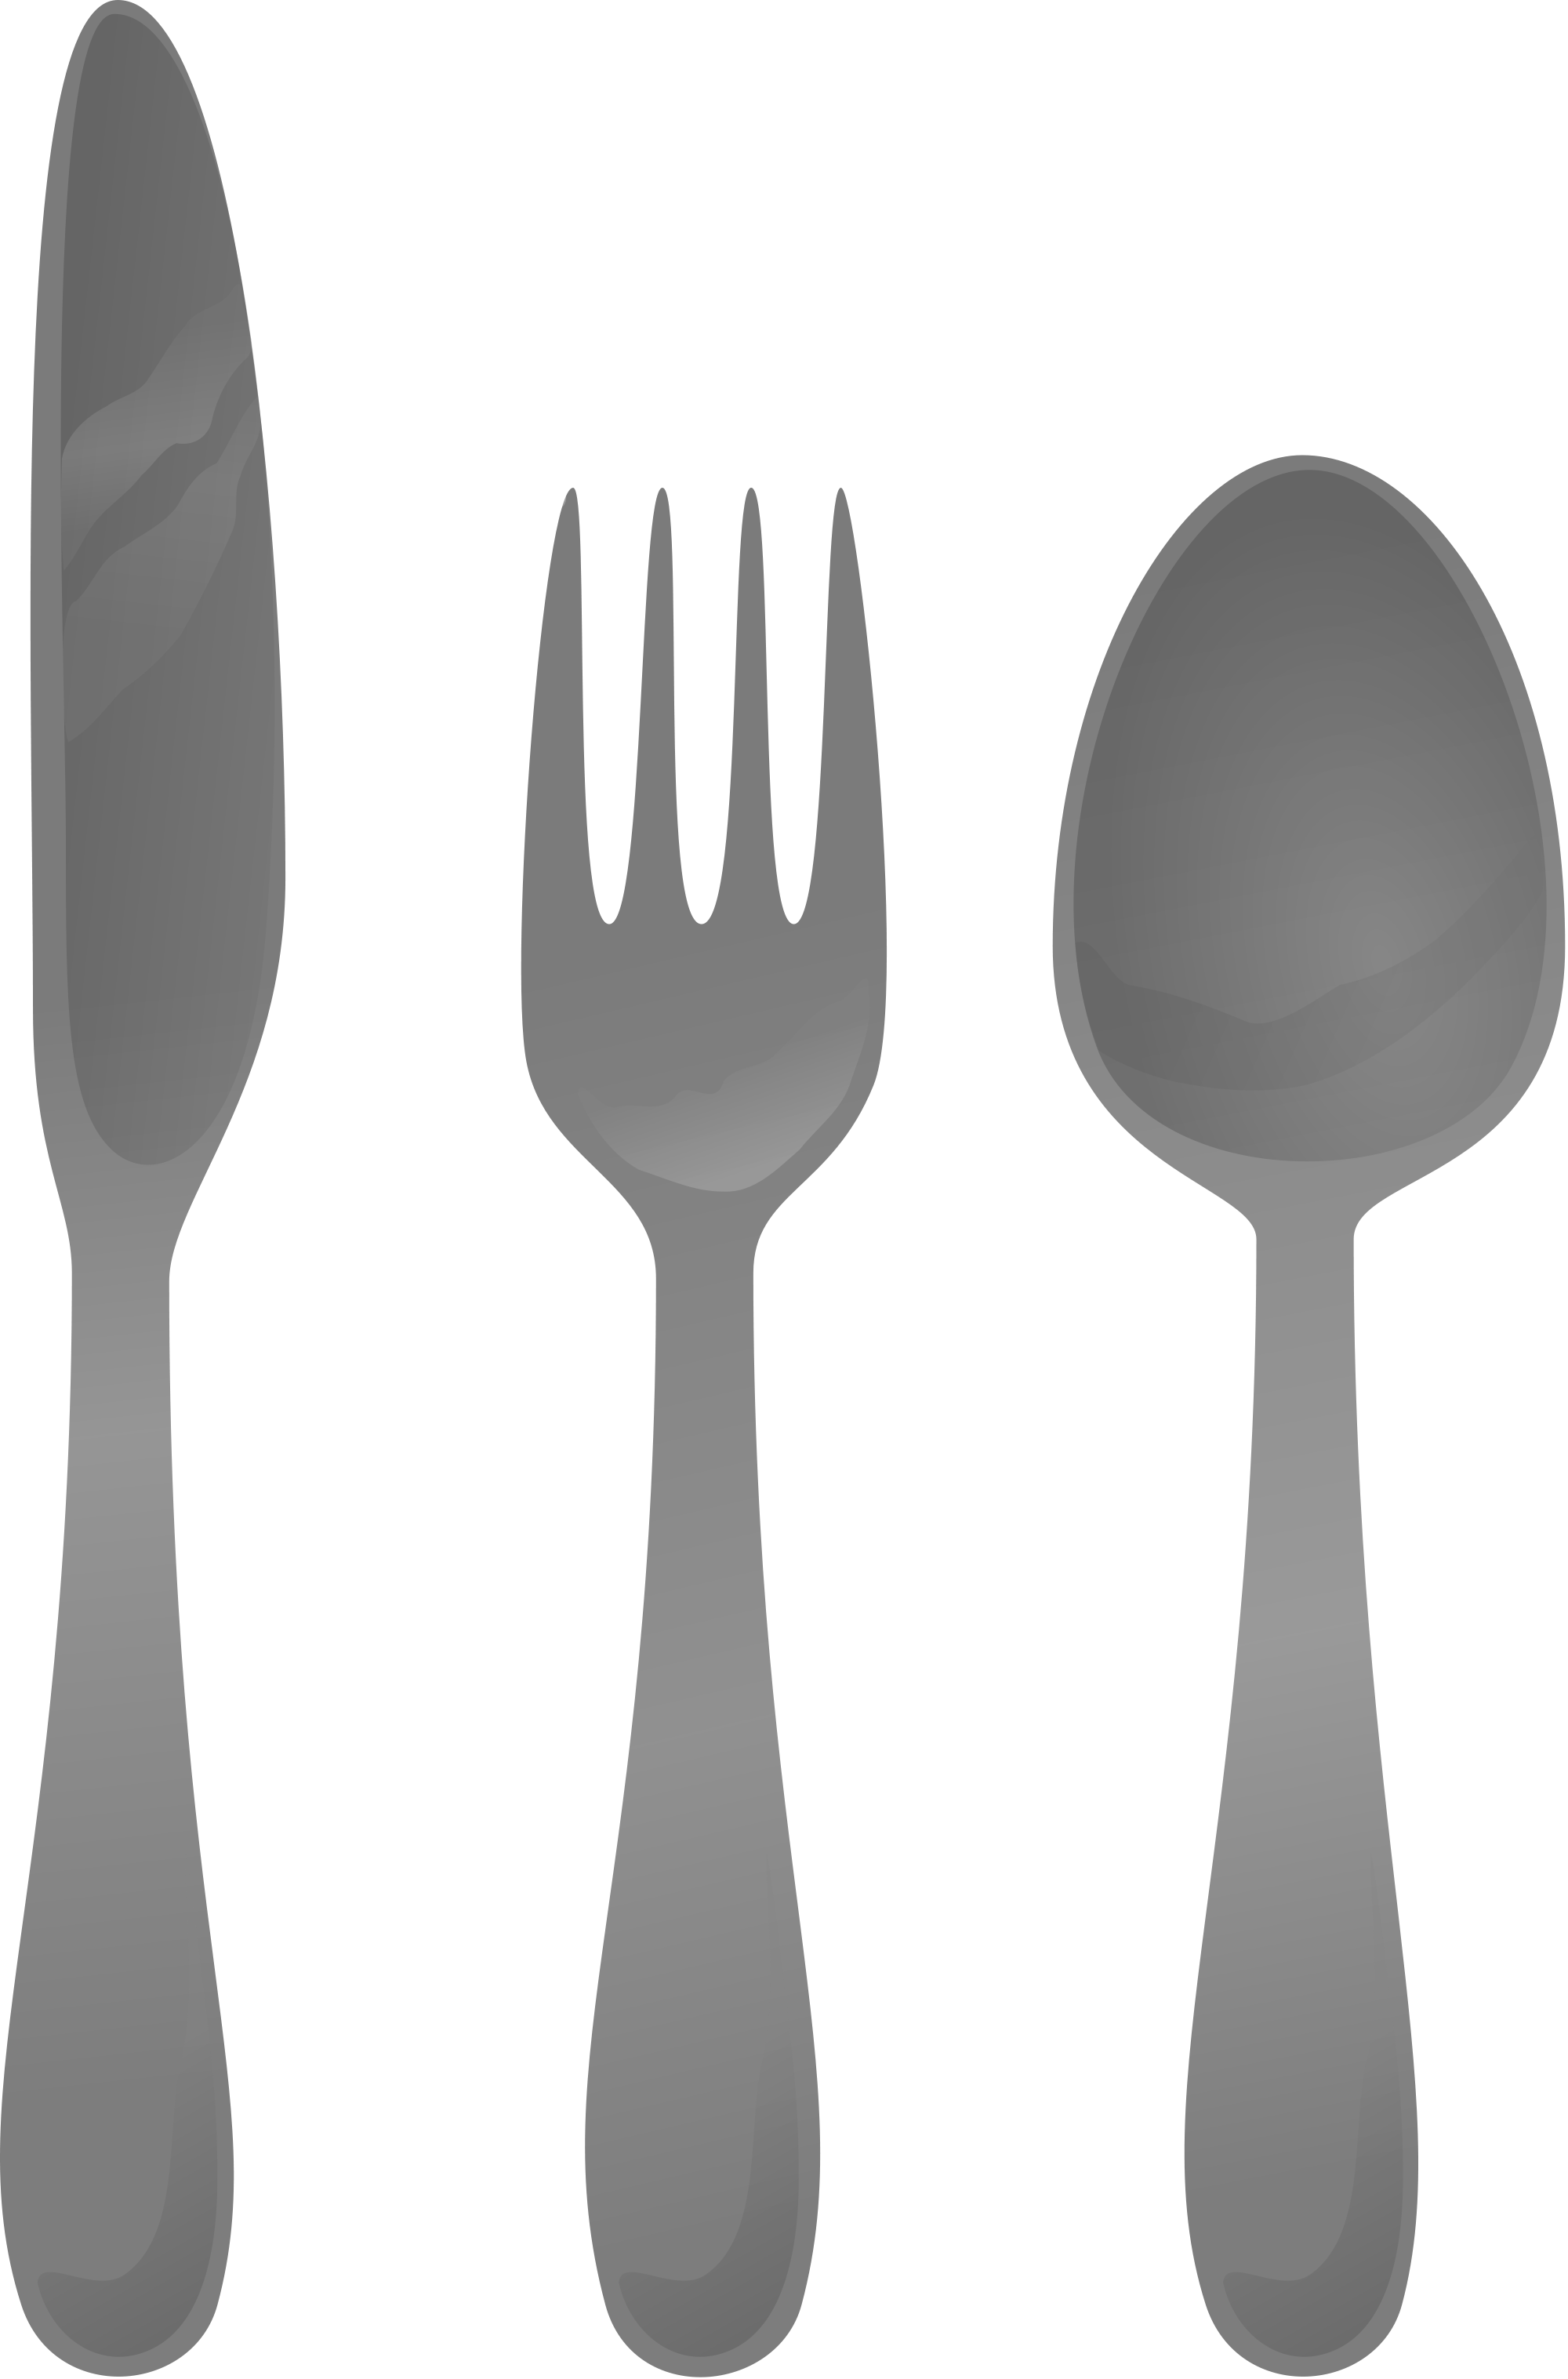 Silverware clip art clipart images gallery for free download.